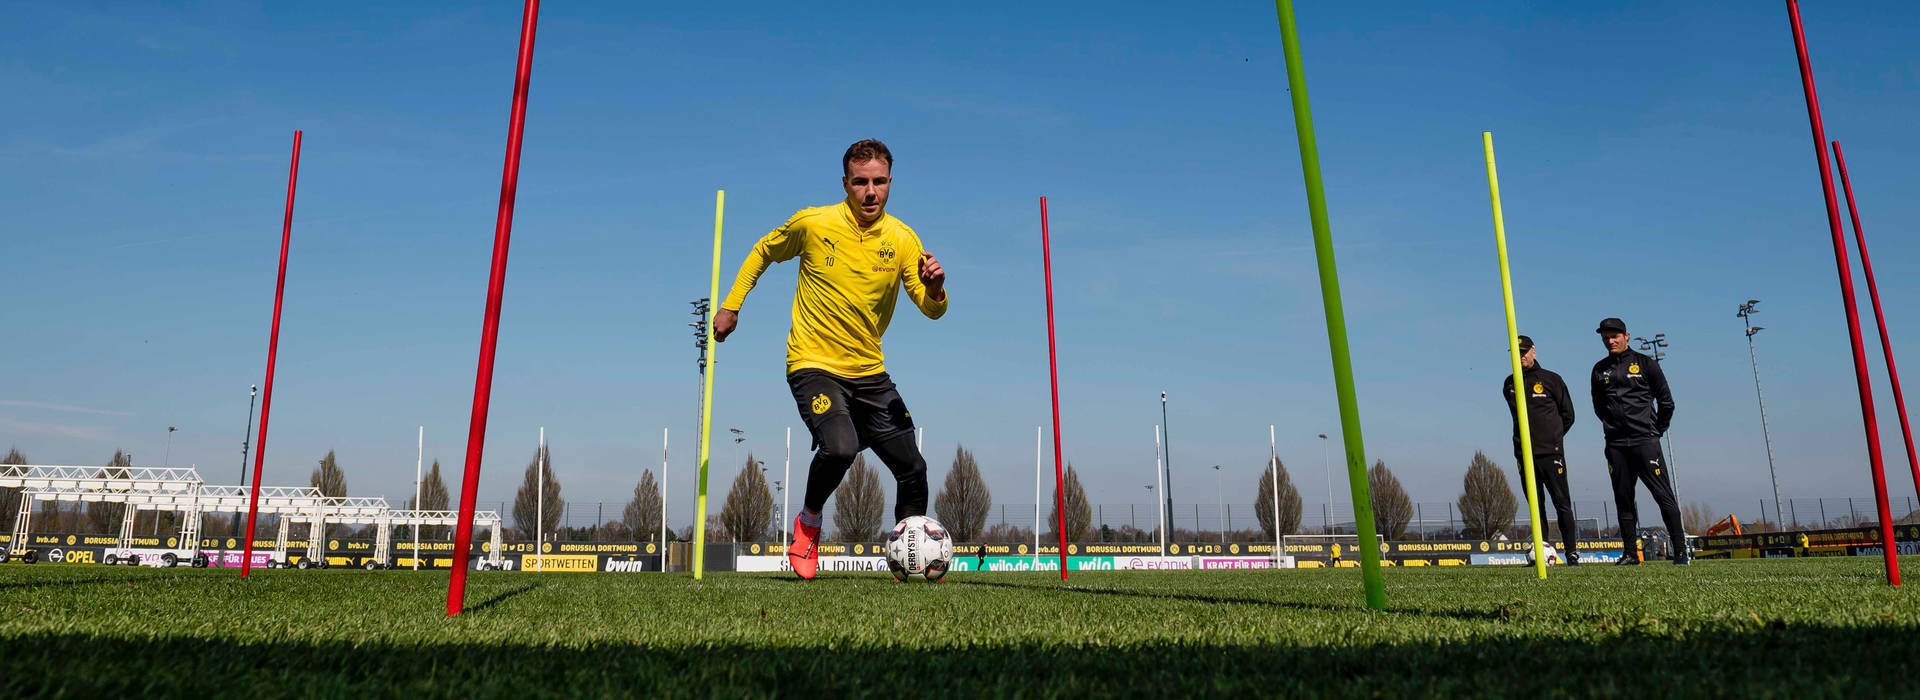 Götze, Alcácer and Witsel back on the training ground